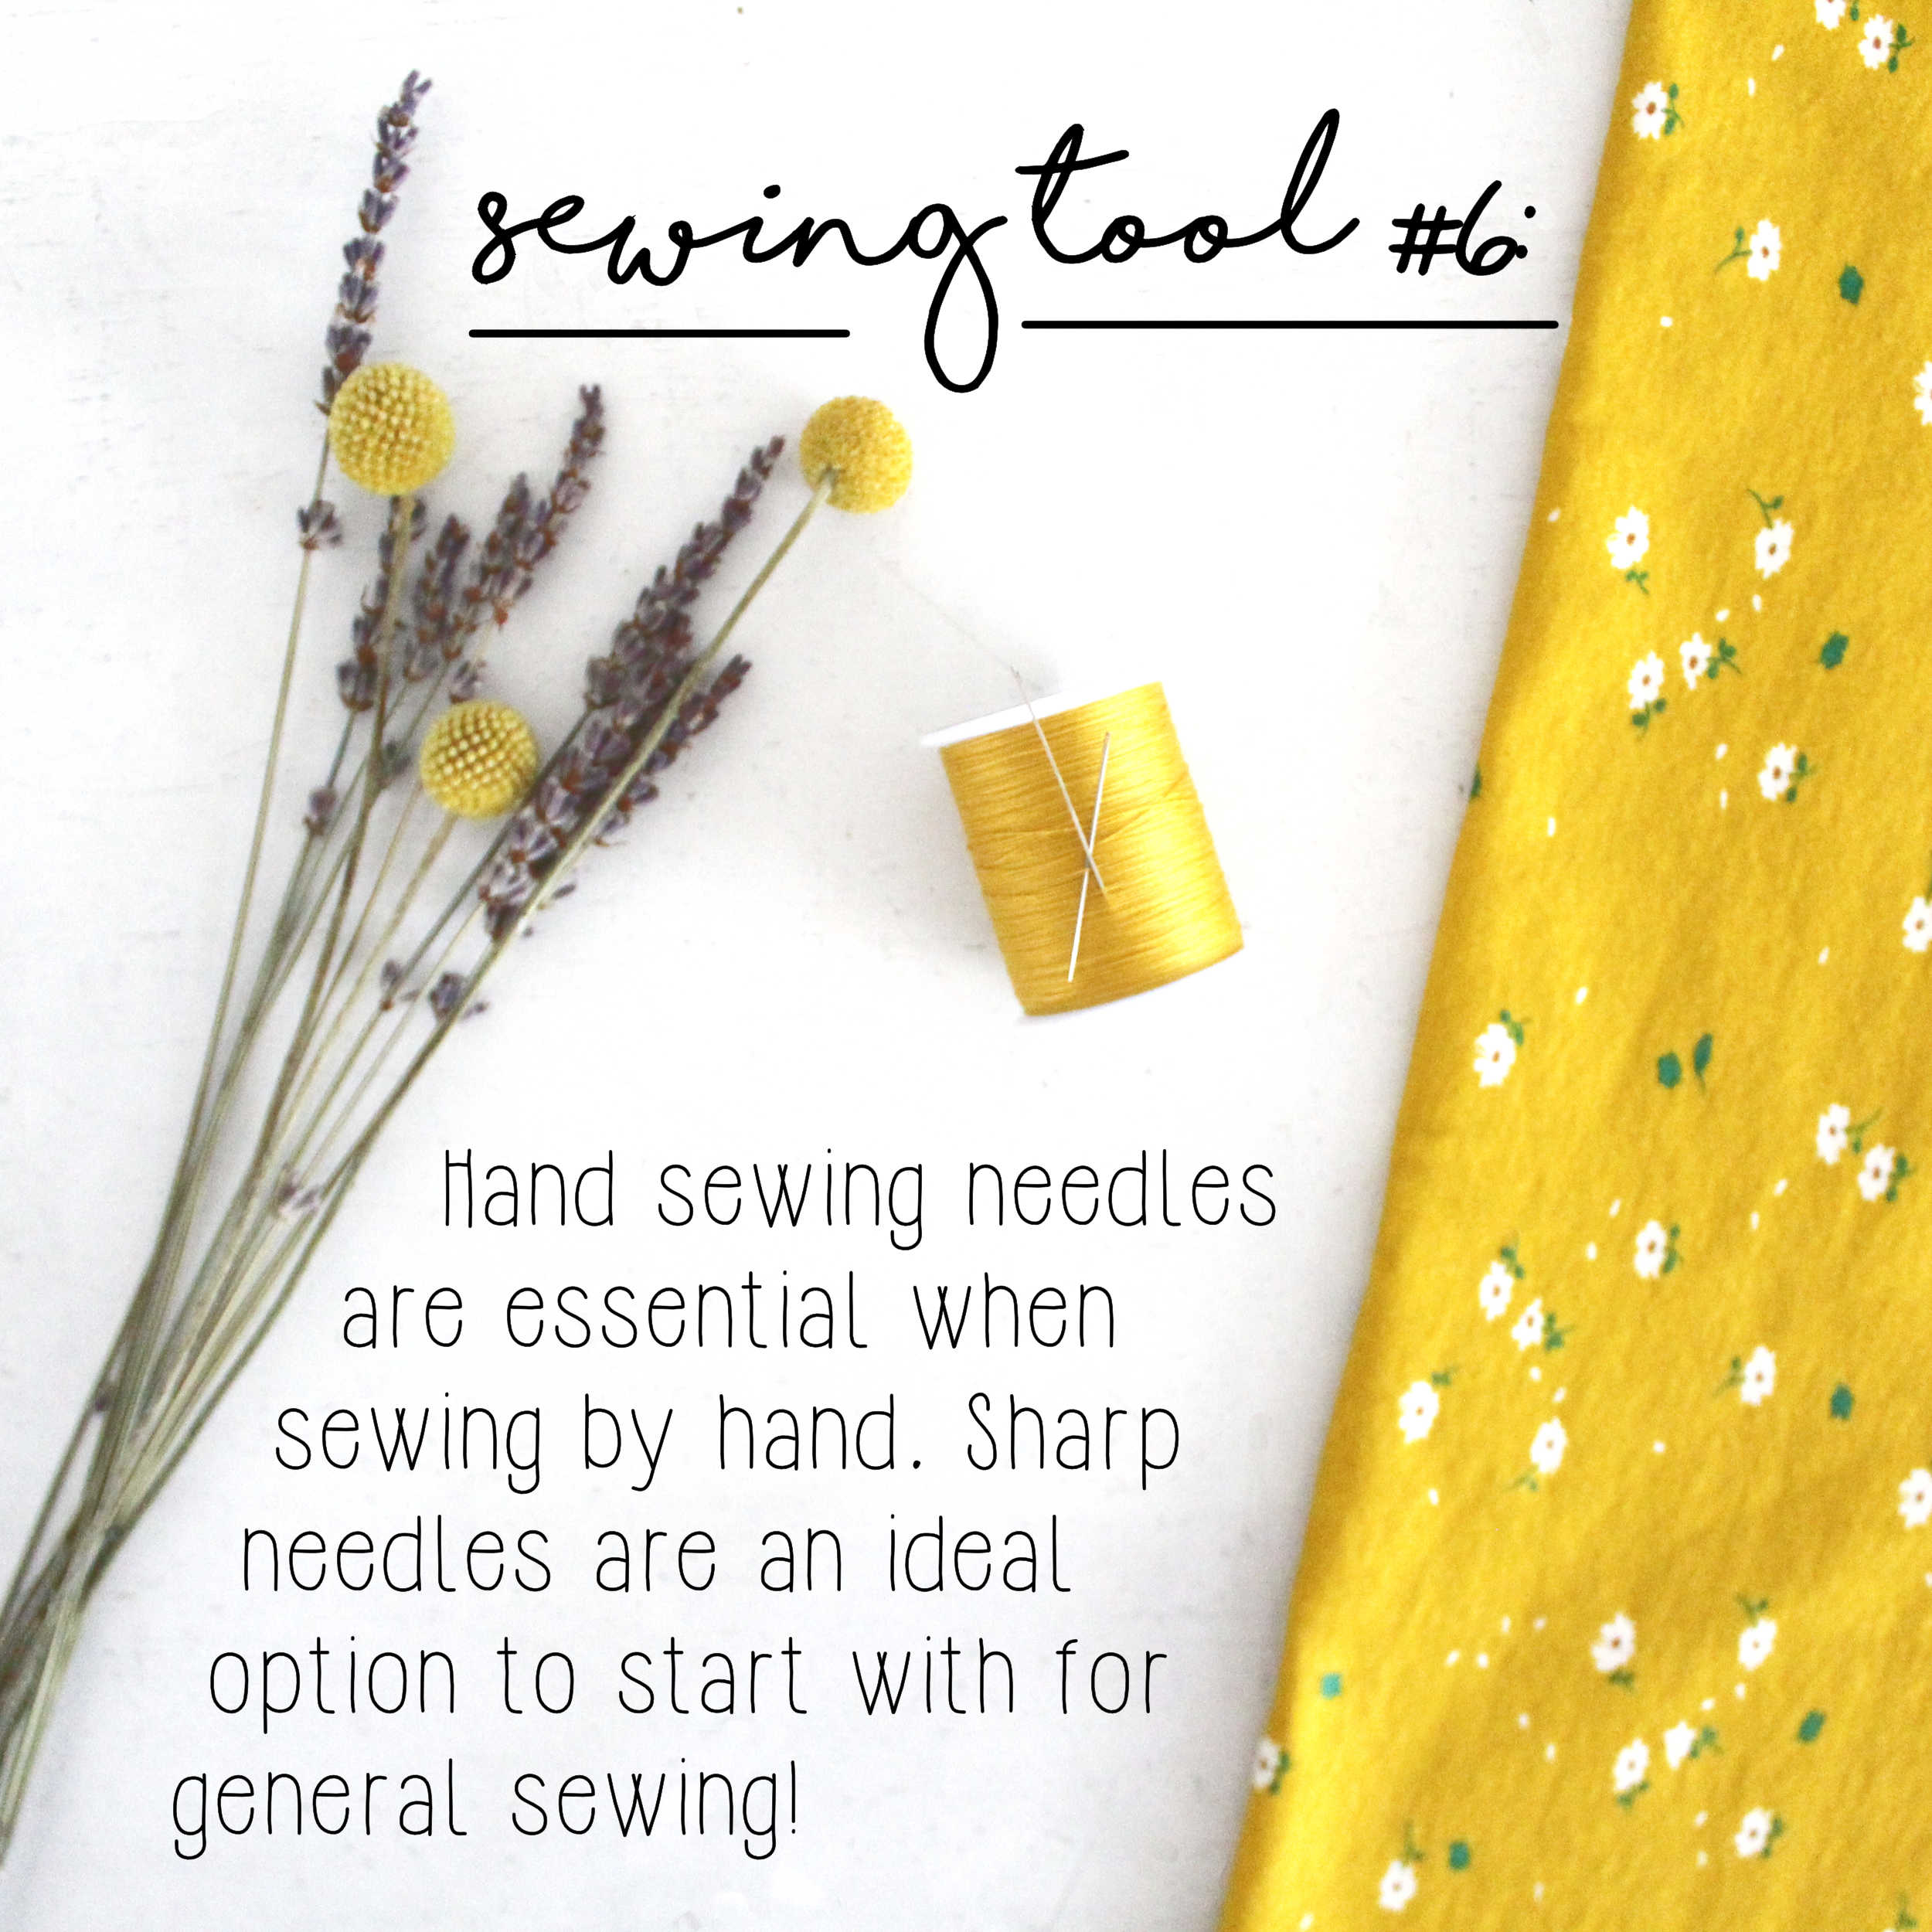 How To Build A Sewing Kit: Basic Tool #6, Hand Sewing Needles